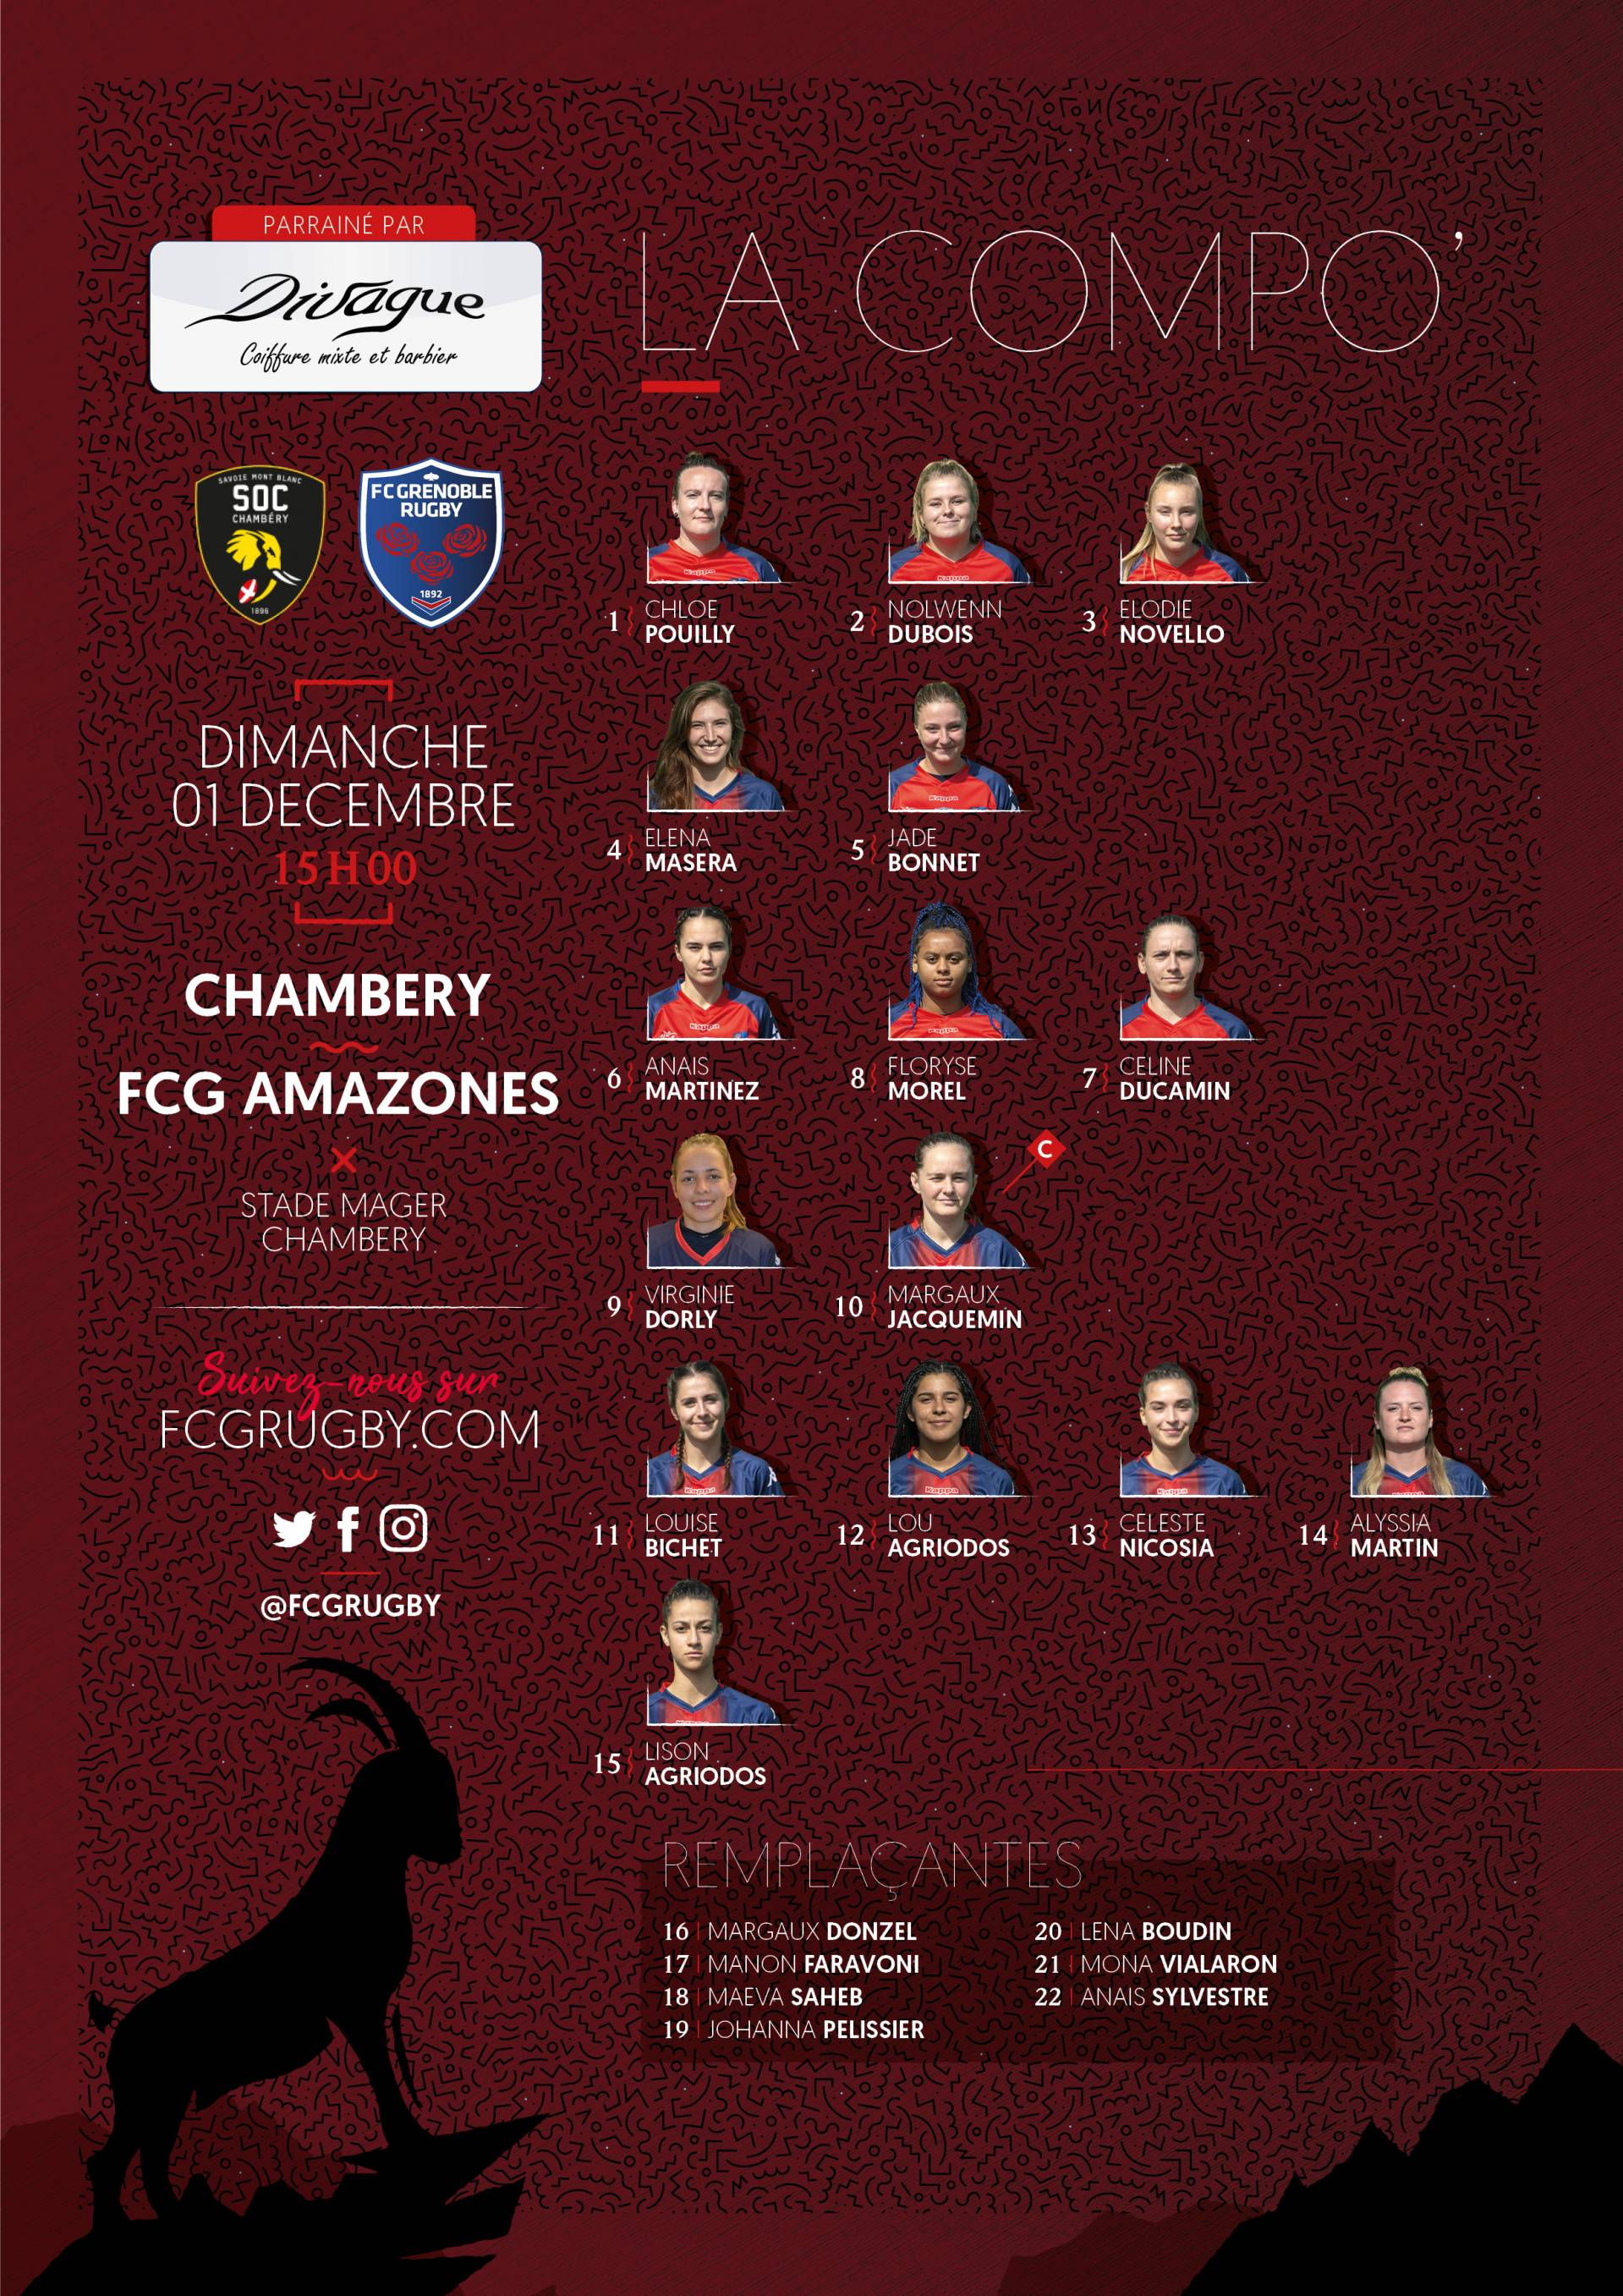 Anais Martinez fcg - fc grenoble rugby - the compo of the amazons fed.1 in